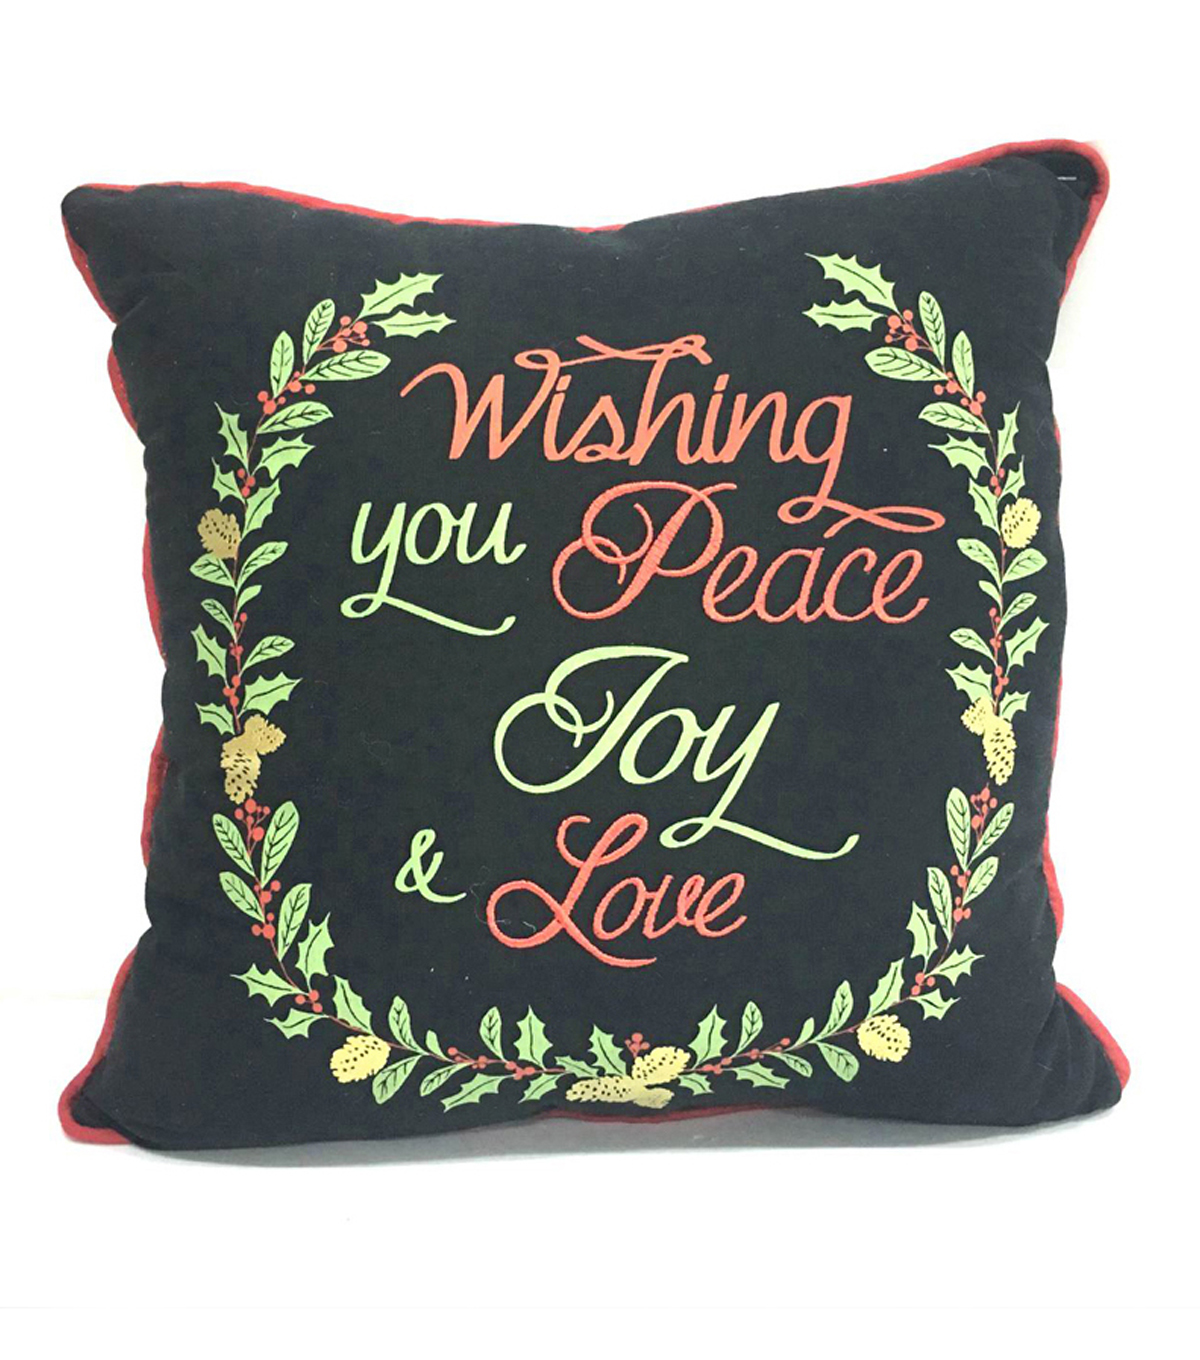 Maker's Holiday Pillow-Wishing You